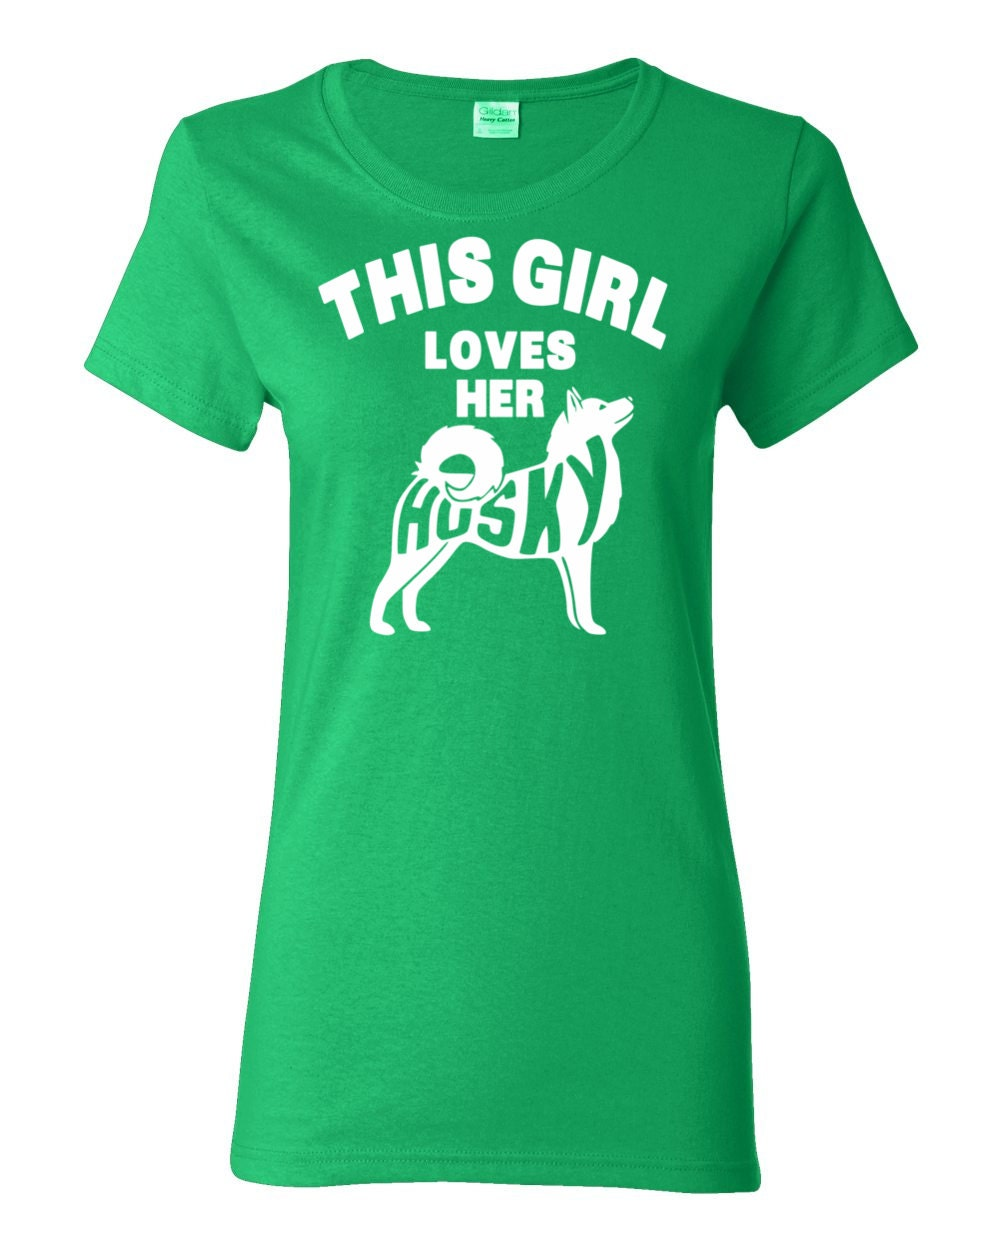 Husky T-shirt - This Girl Loves Her Husky - My Dog Husky Womens T-shirt